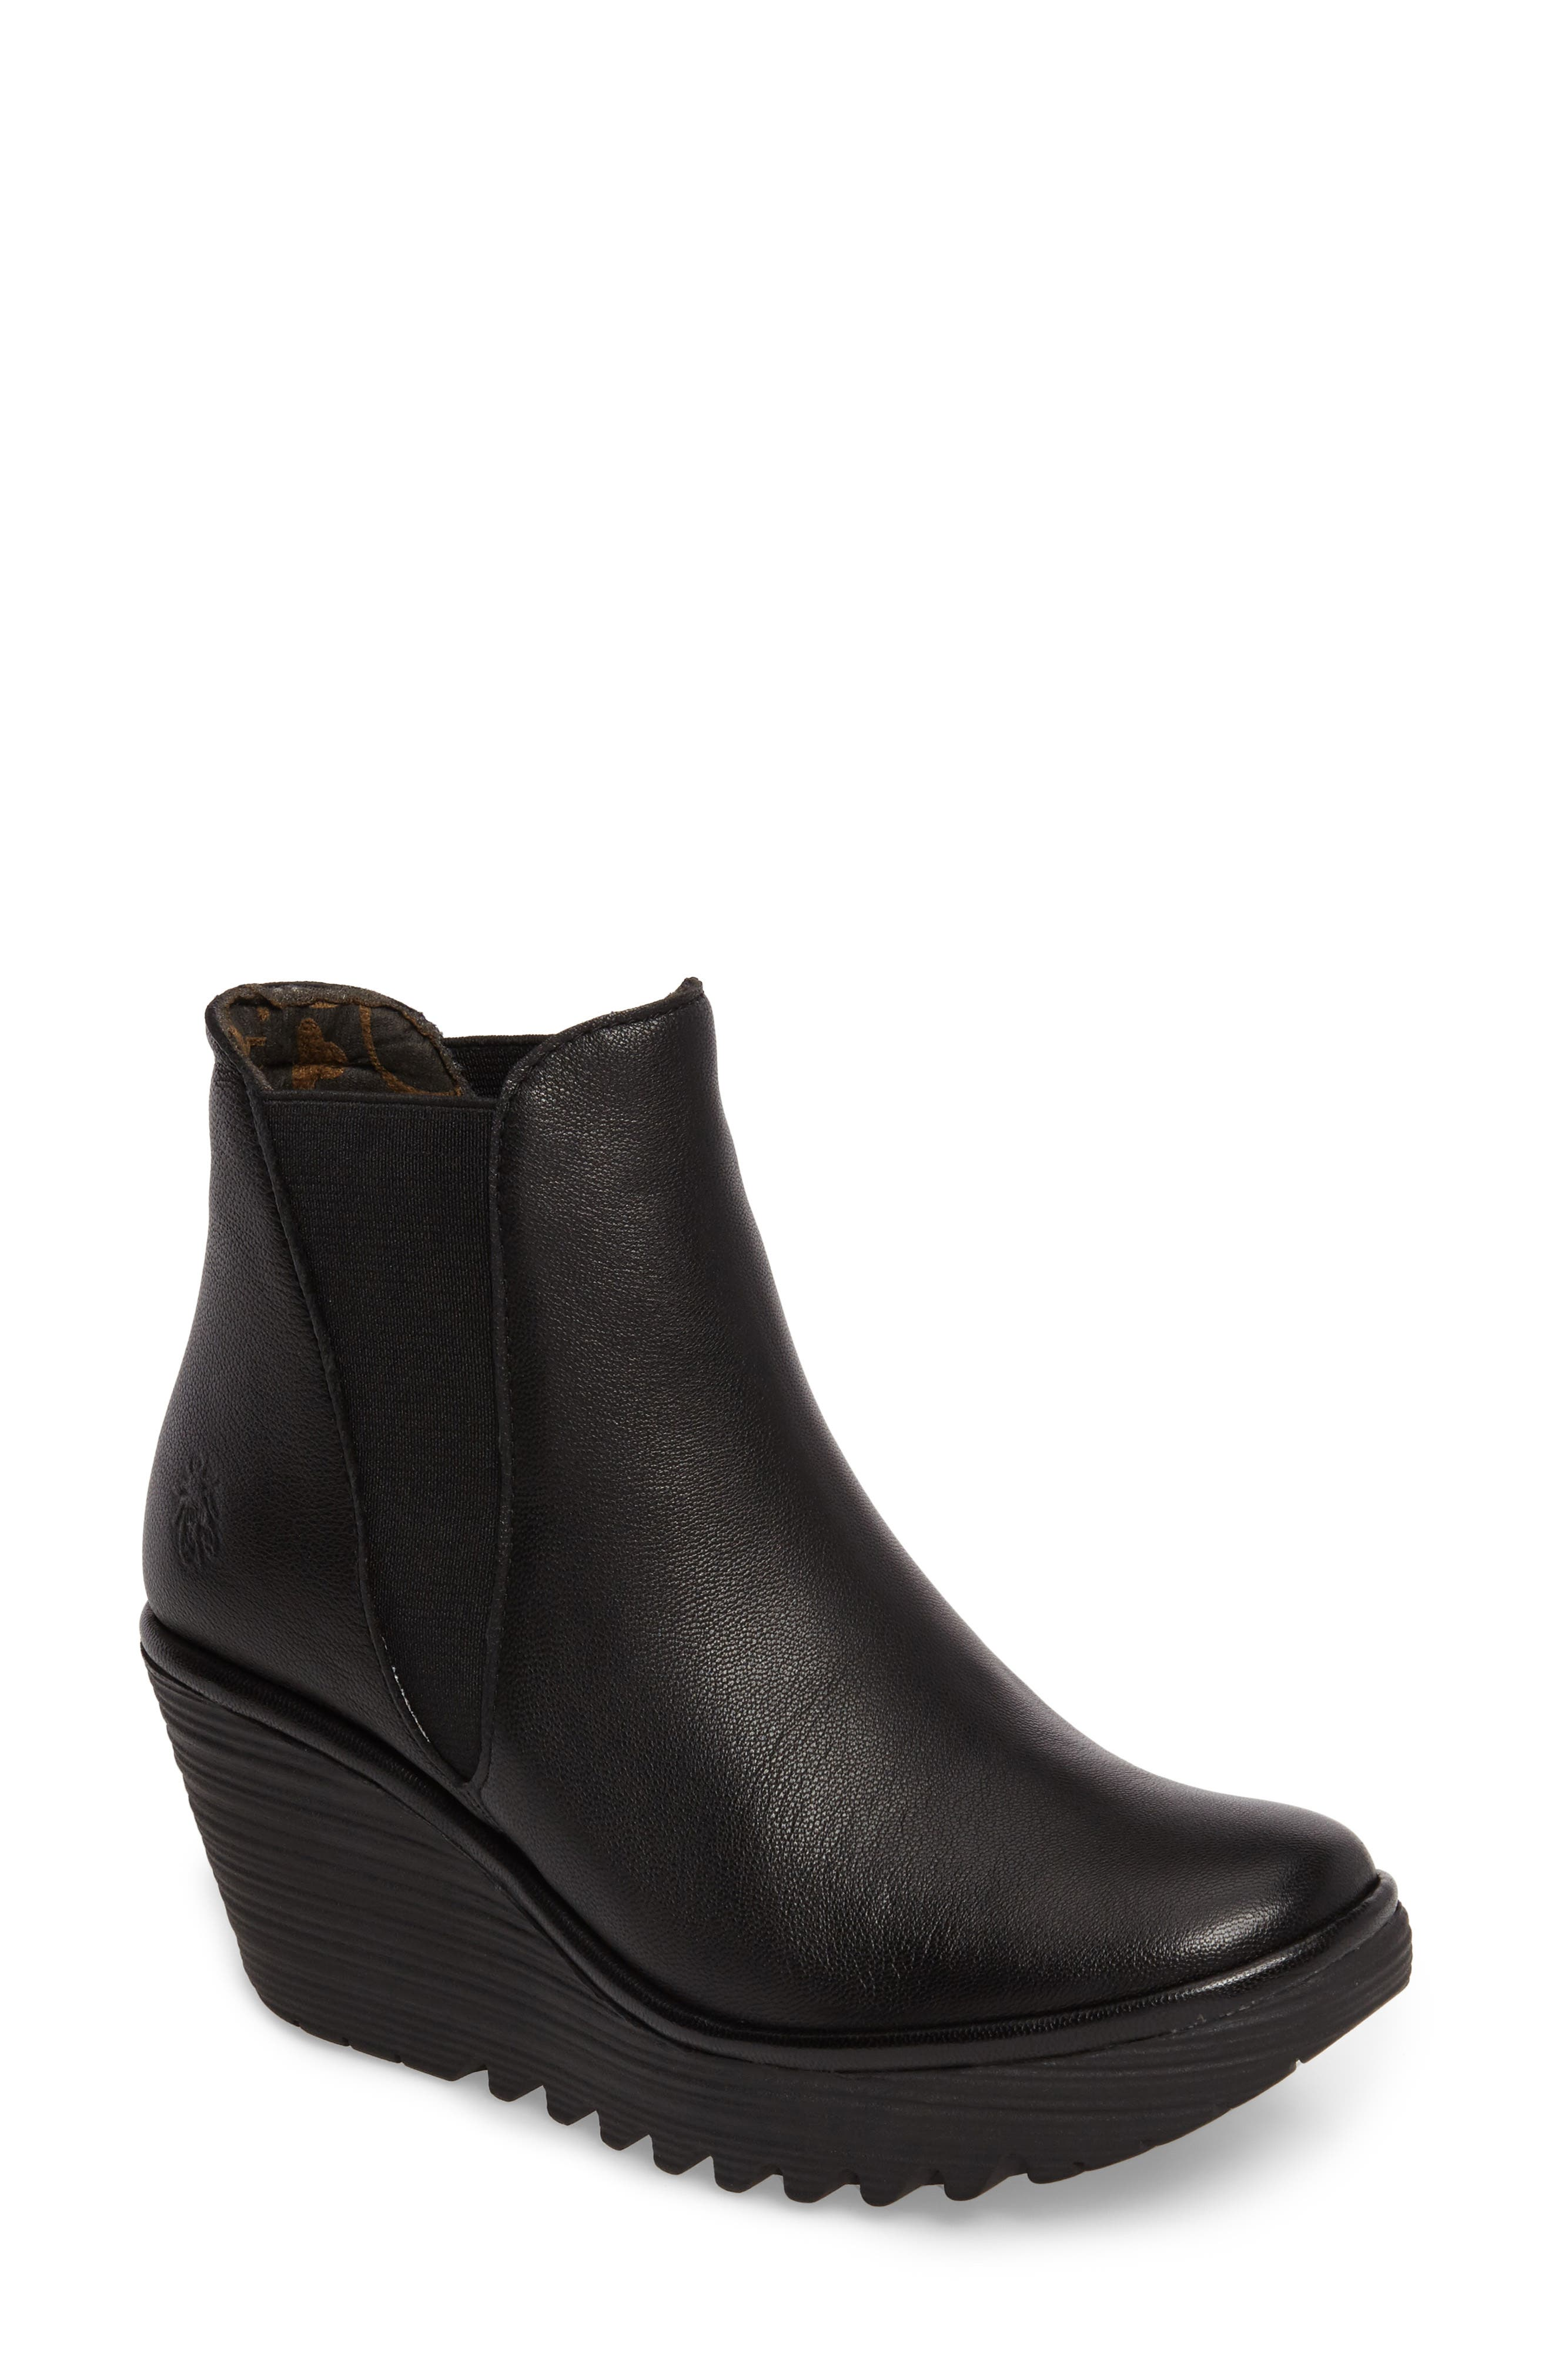 Yoss Wedge Bootie,                             Main thumbnail 1, color,                             001